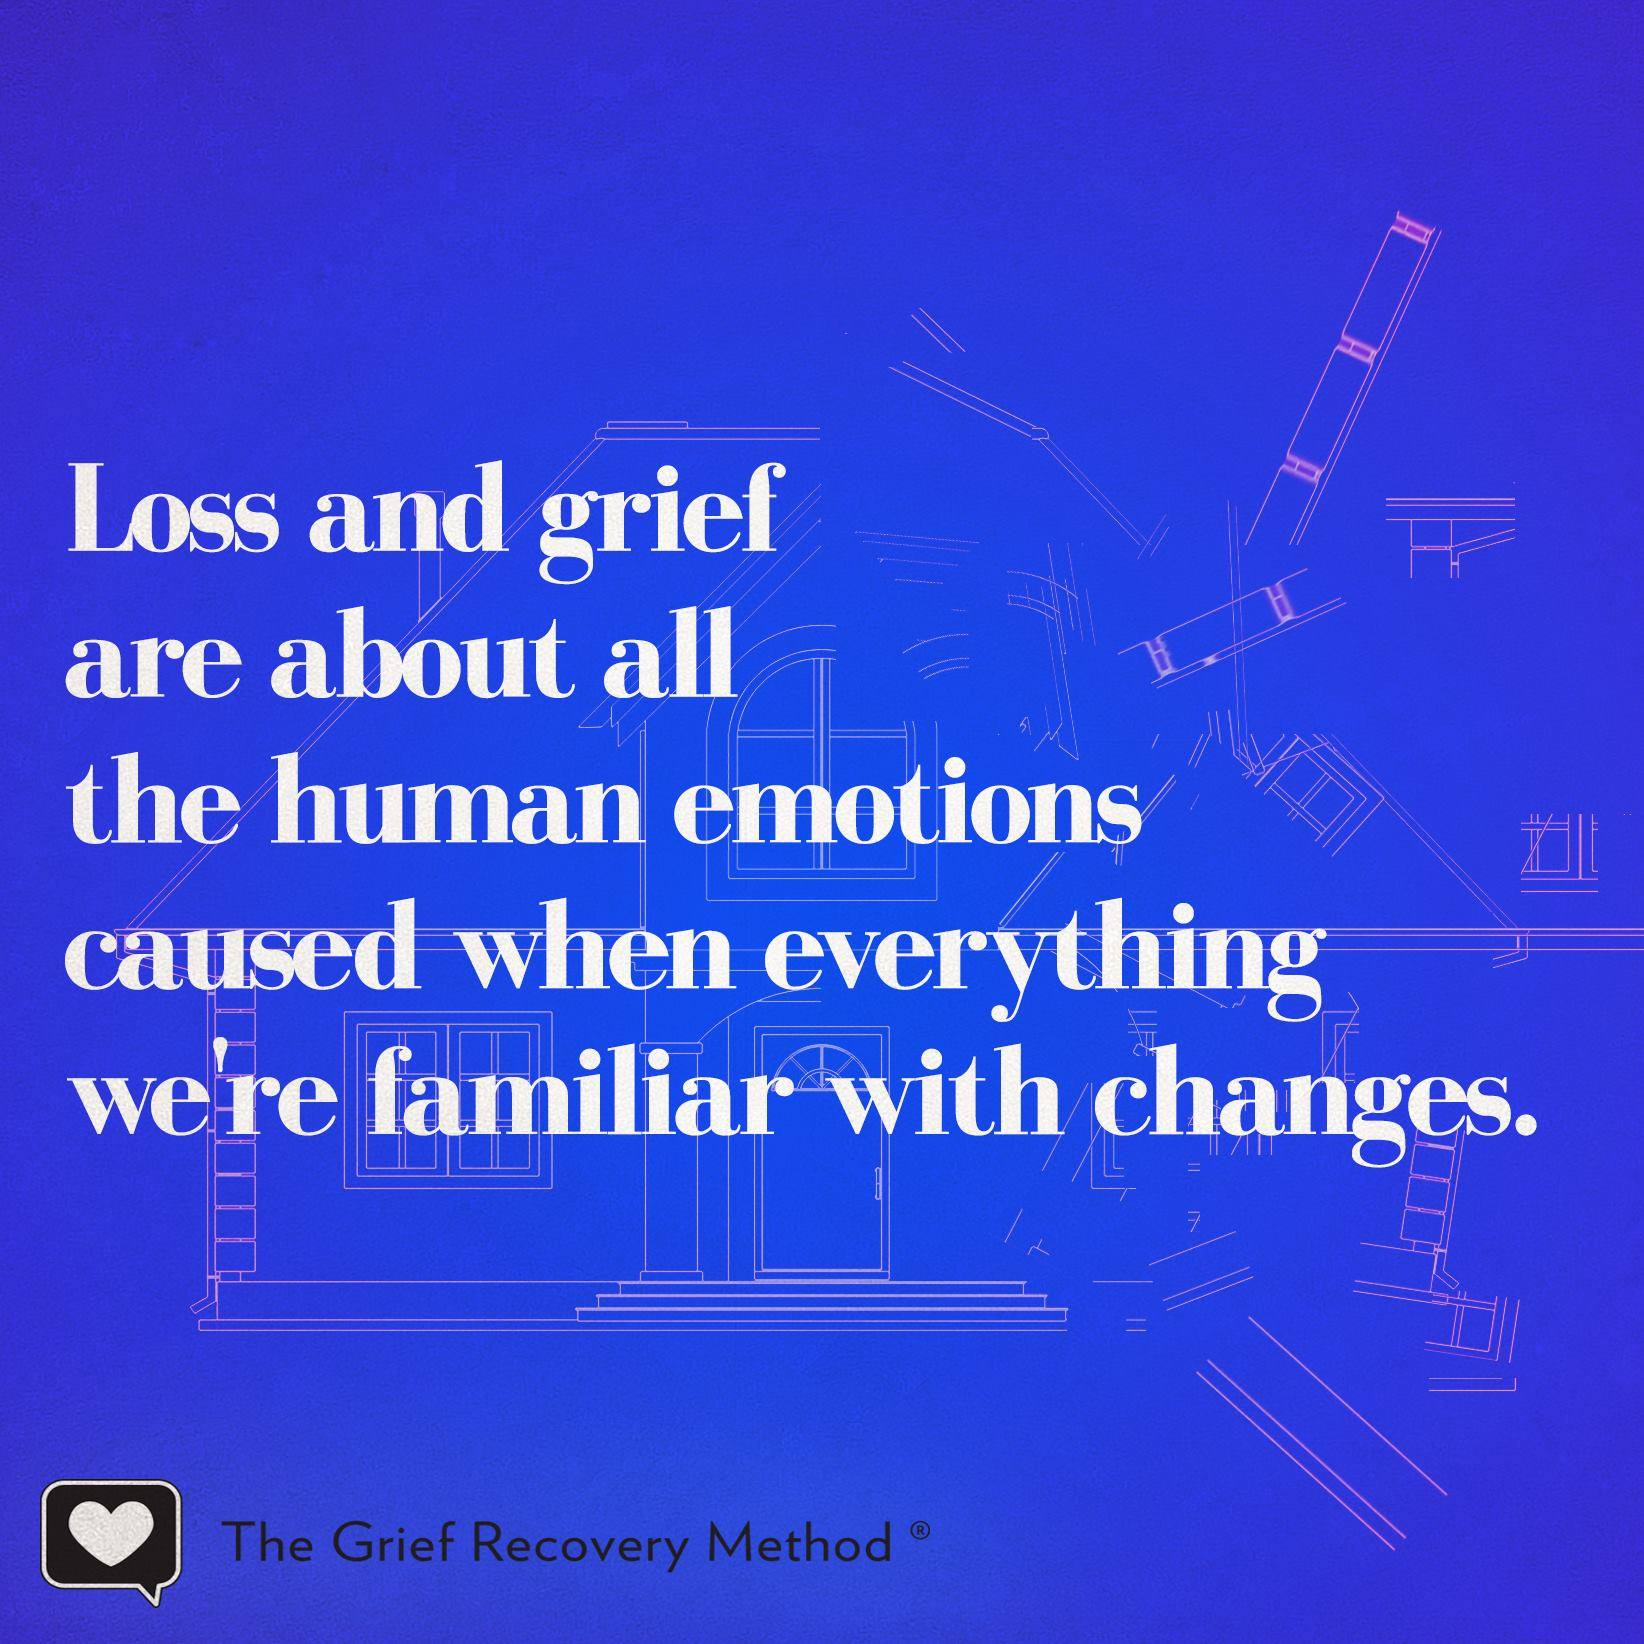 stages of grief loss emotion everything familiar changes